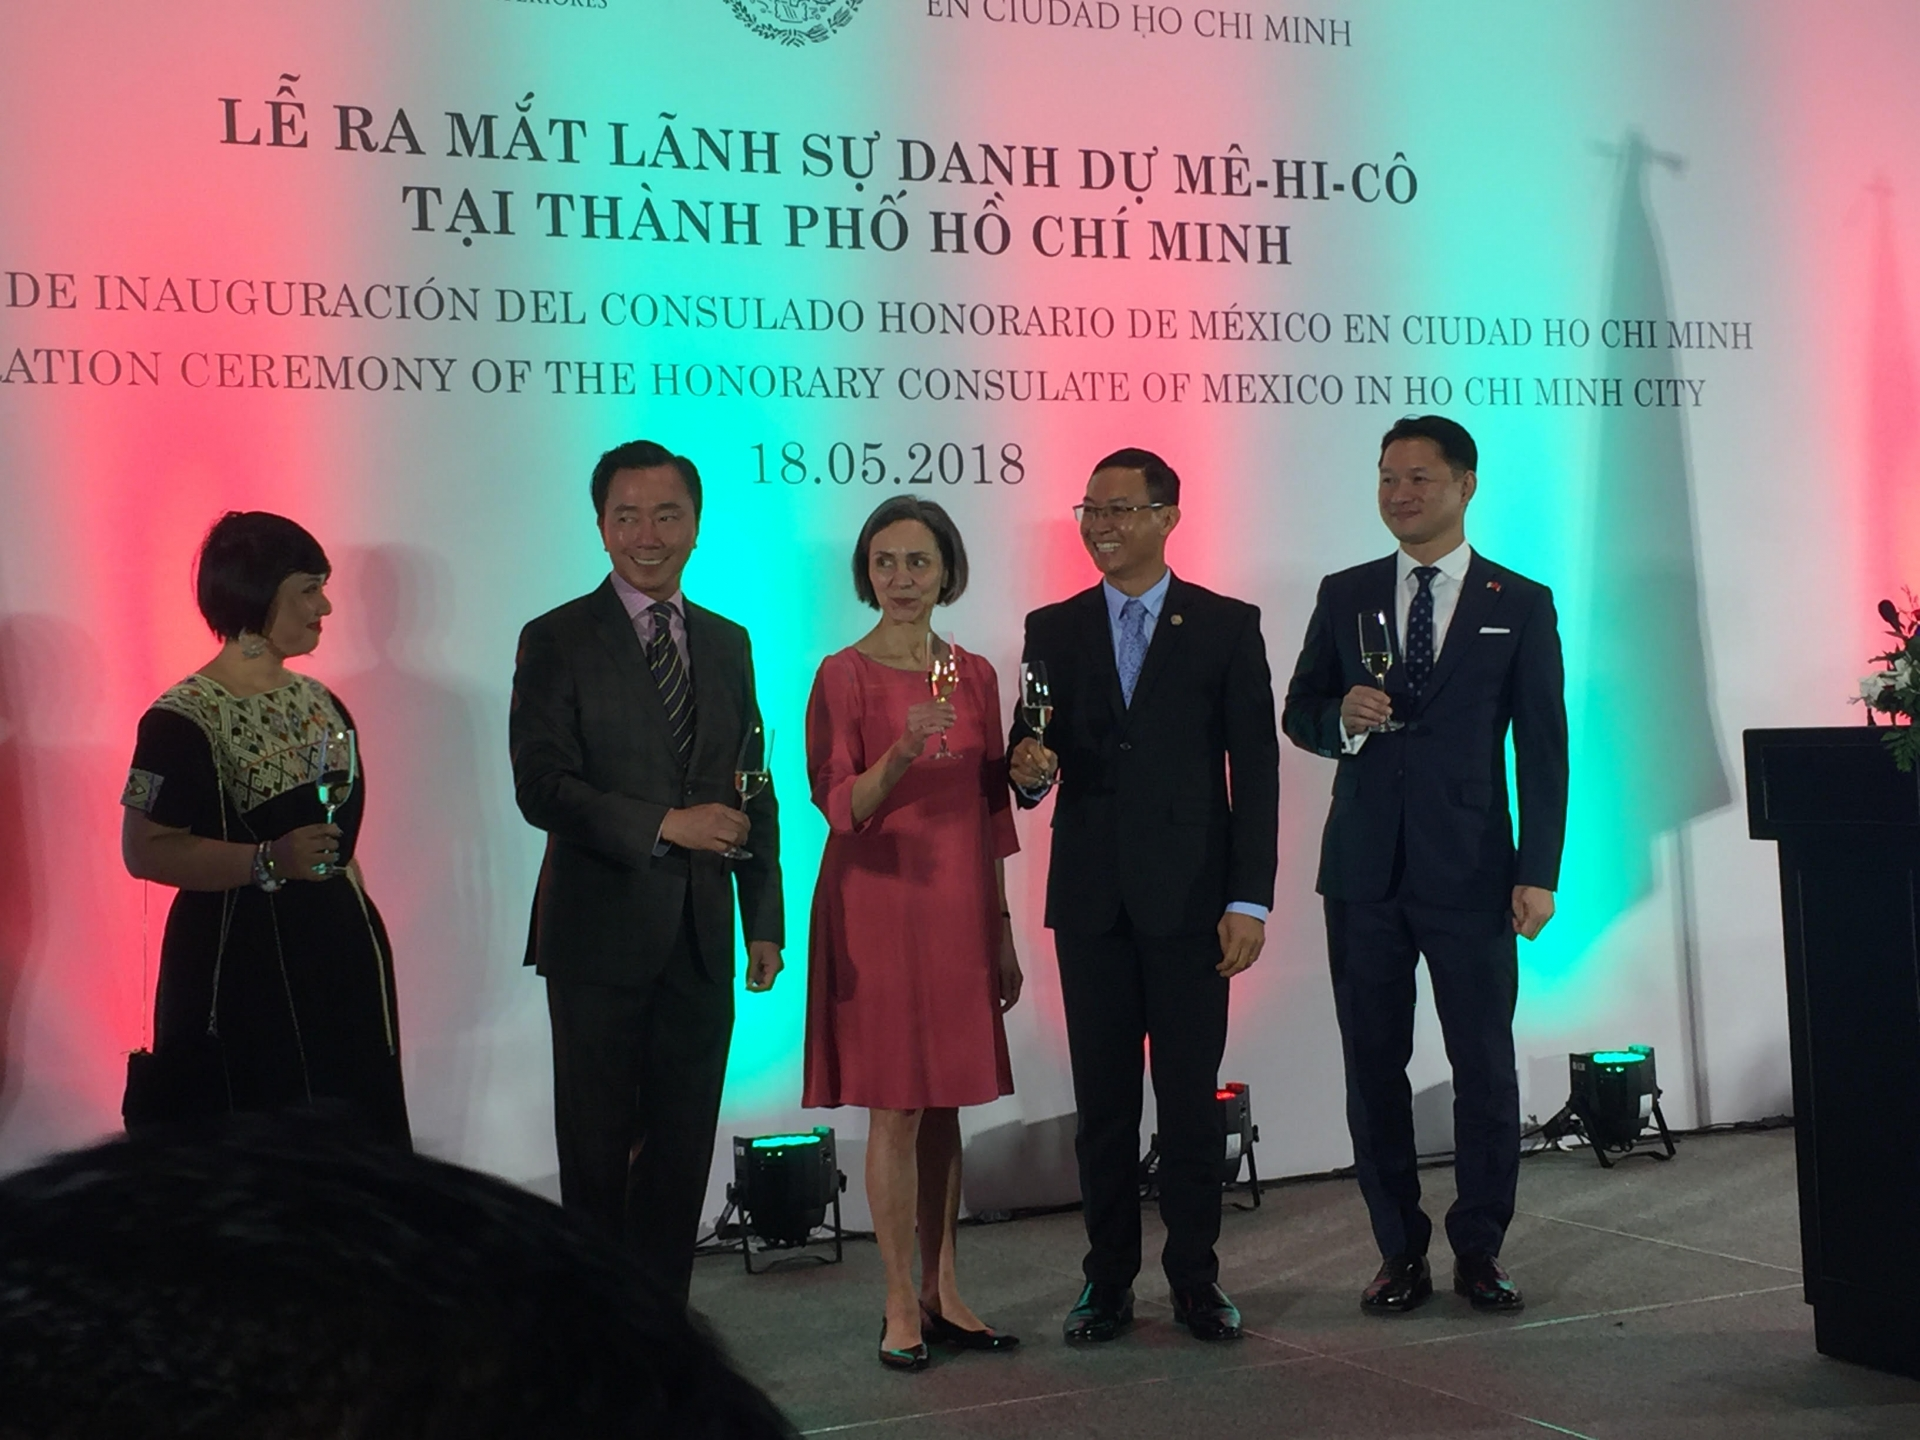 honorary consulate of mexico officially launched in ho chi minh city